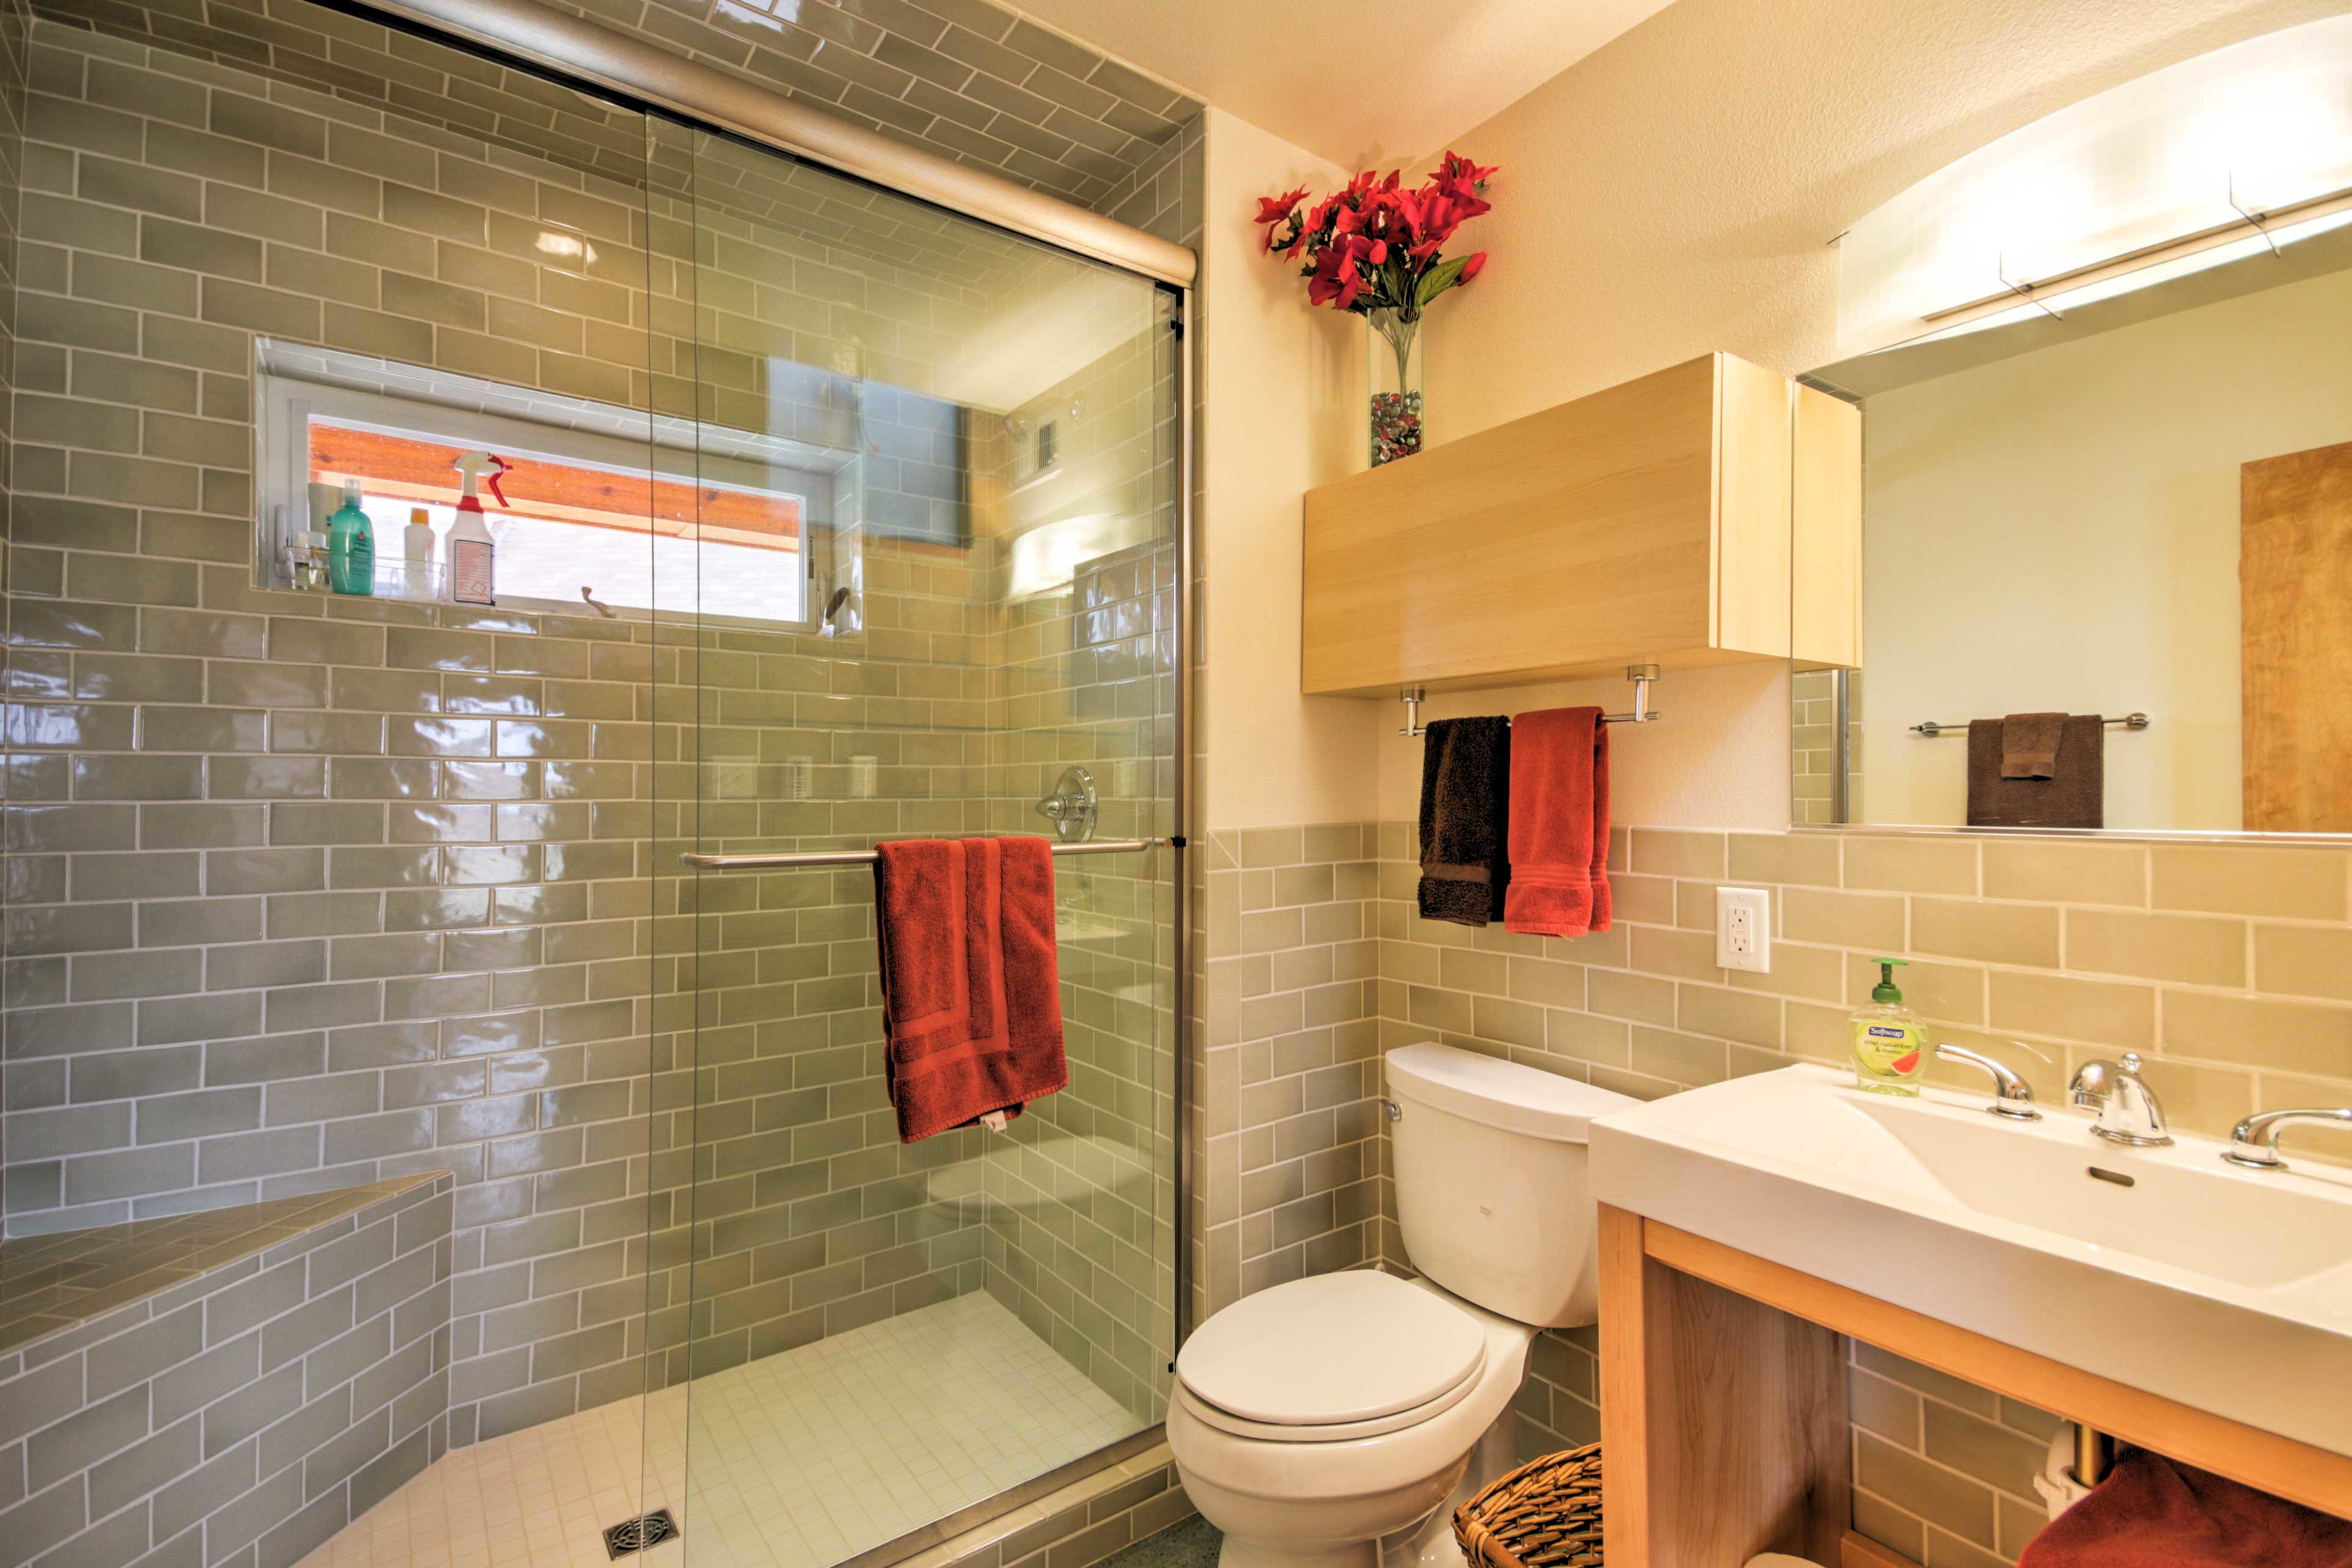 Both the master bathroom and guest bathroom feature brand new walk-in shower.